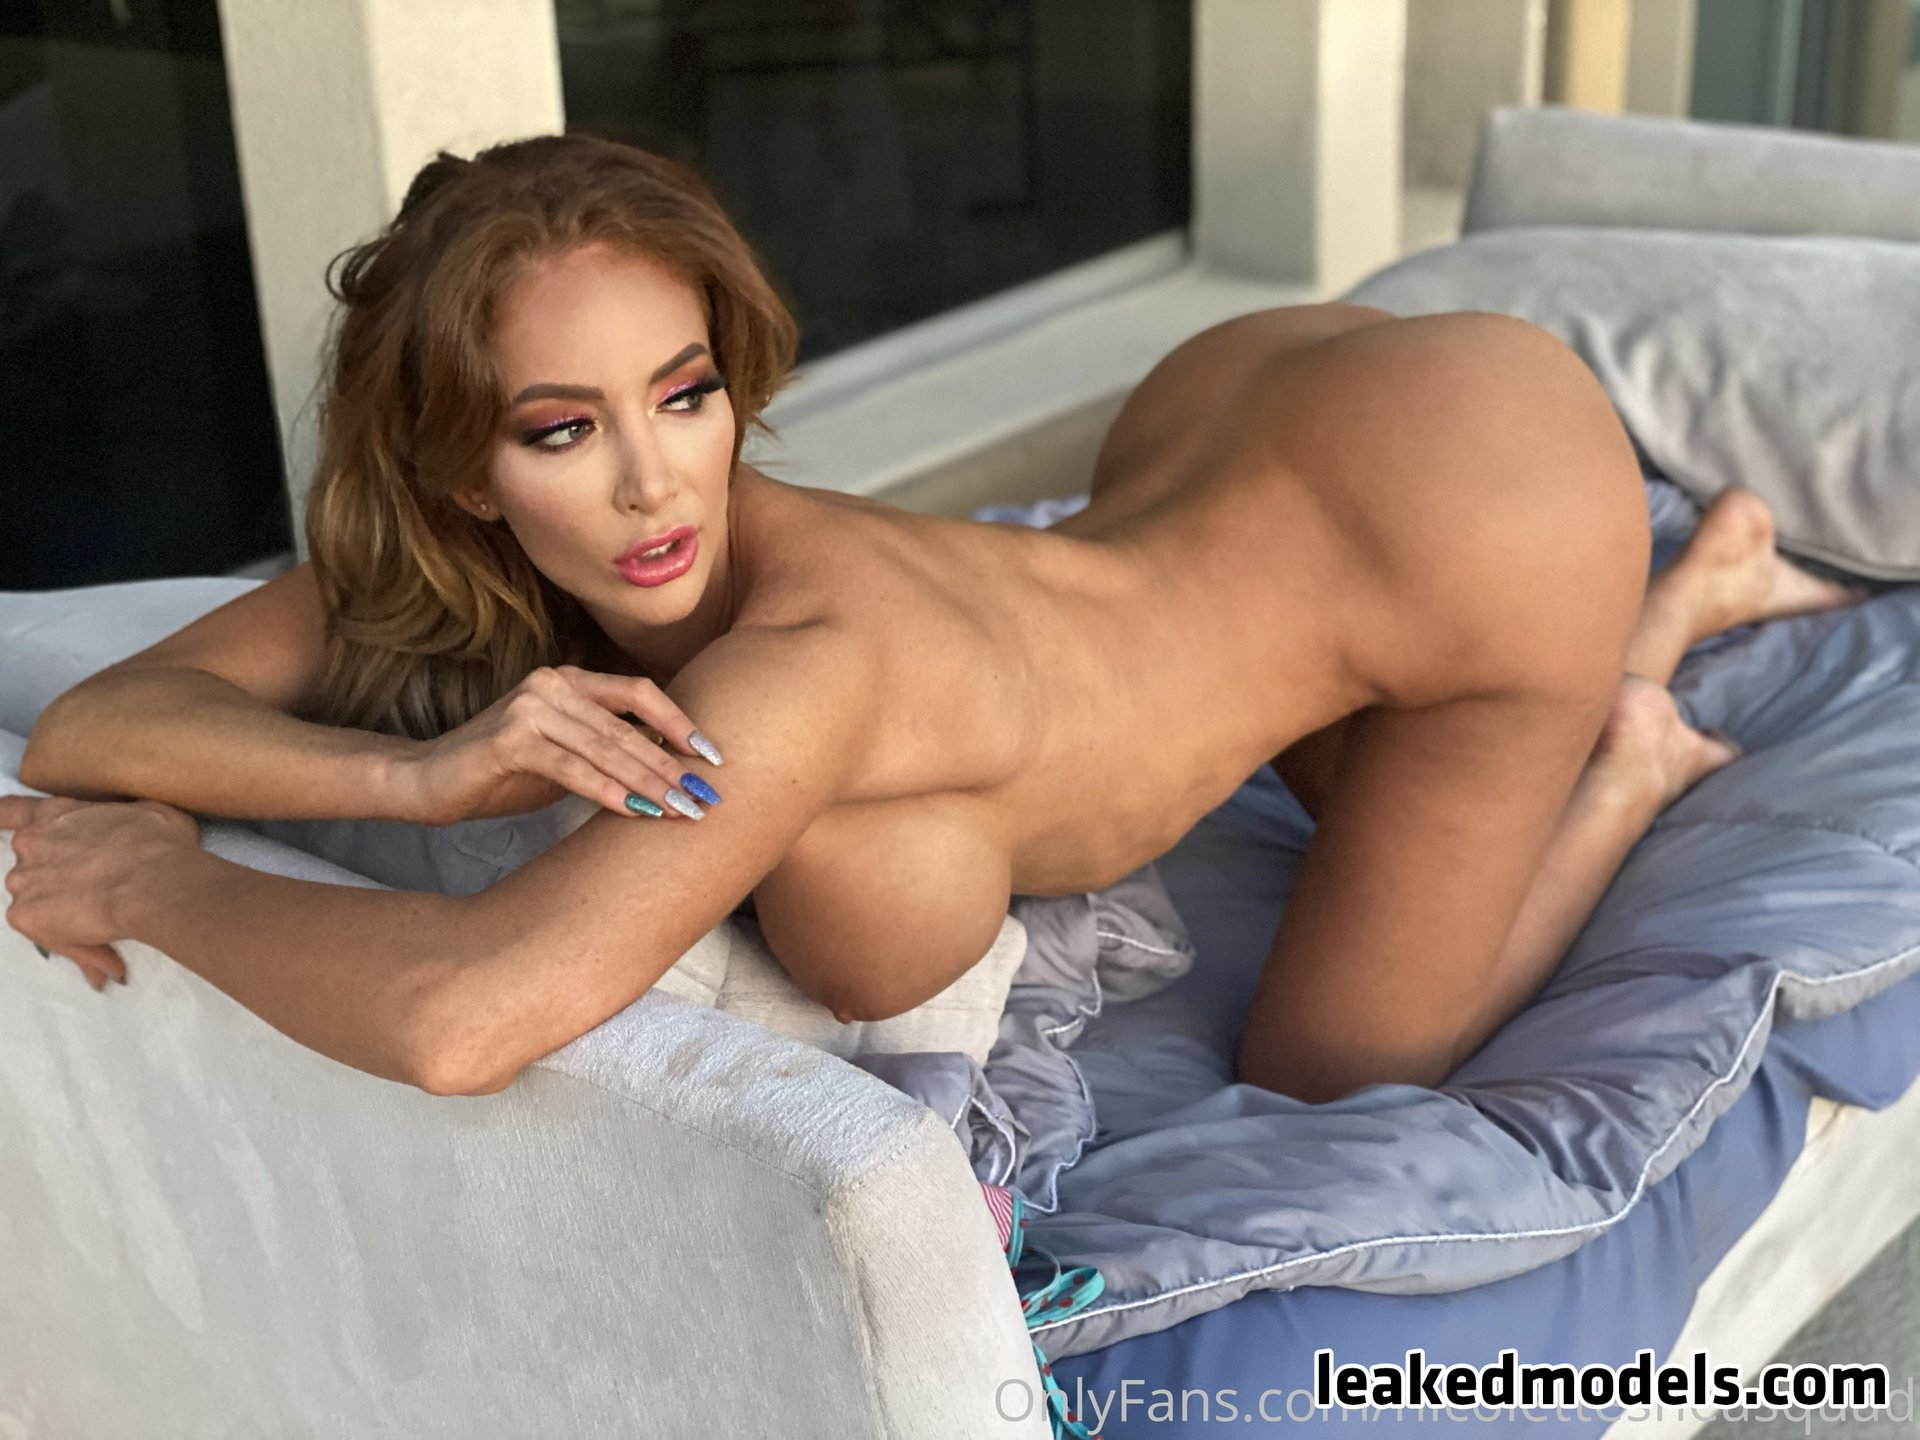 Nicolette Shea – nicolettesheaxxx OnlyFans Leaks (94 Photos and 10 Videos)